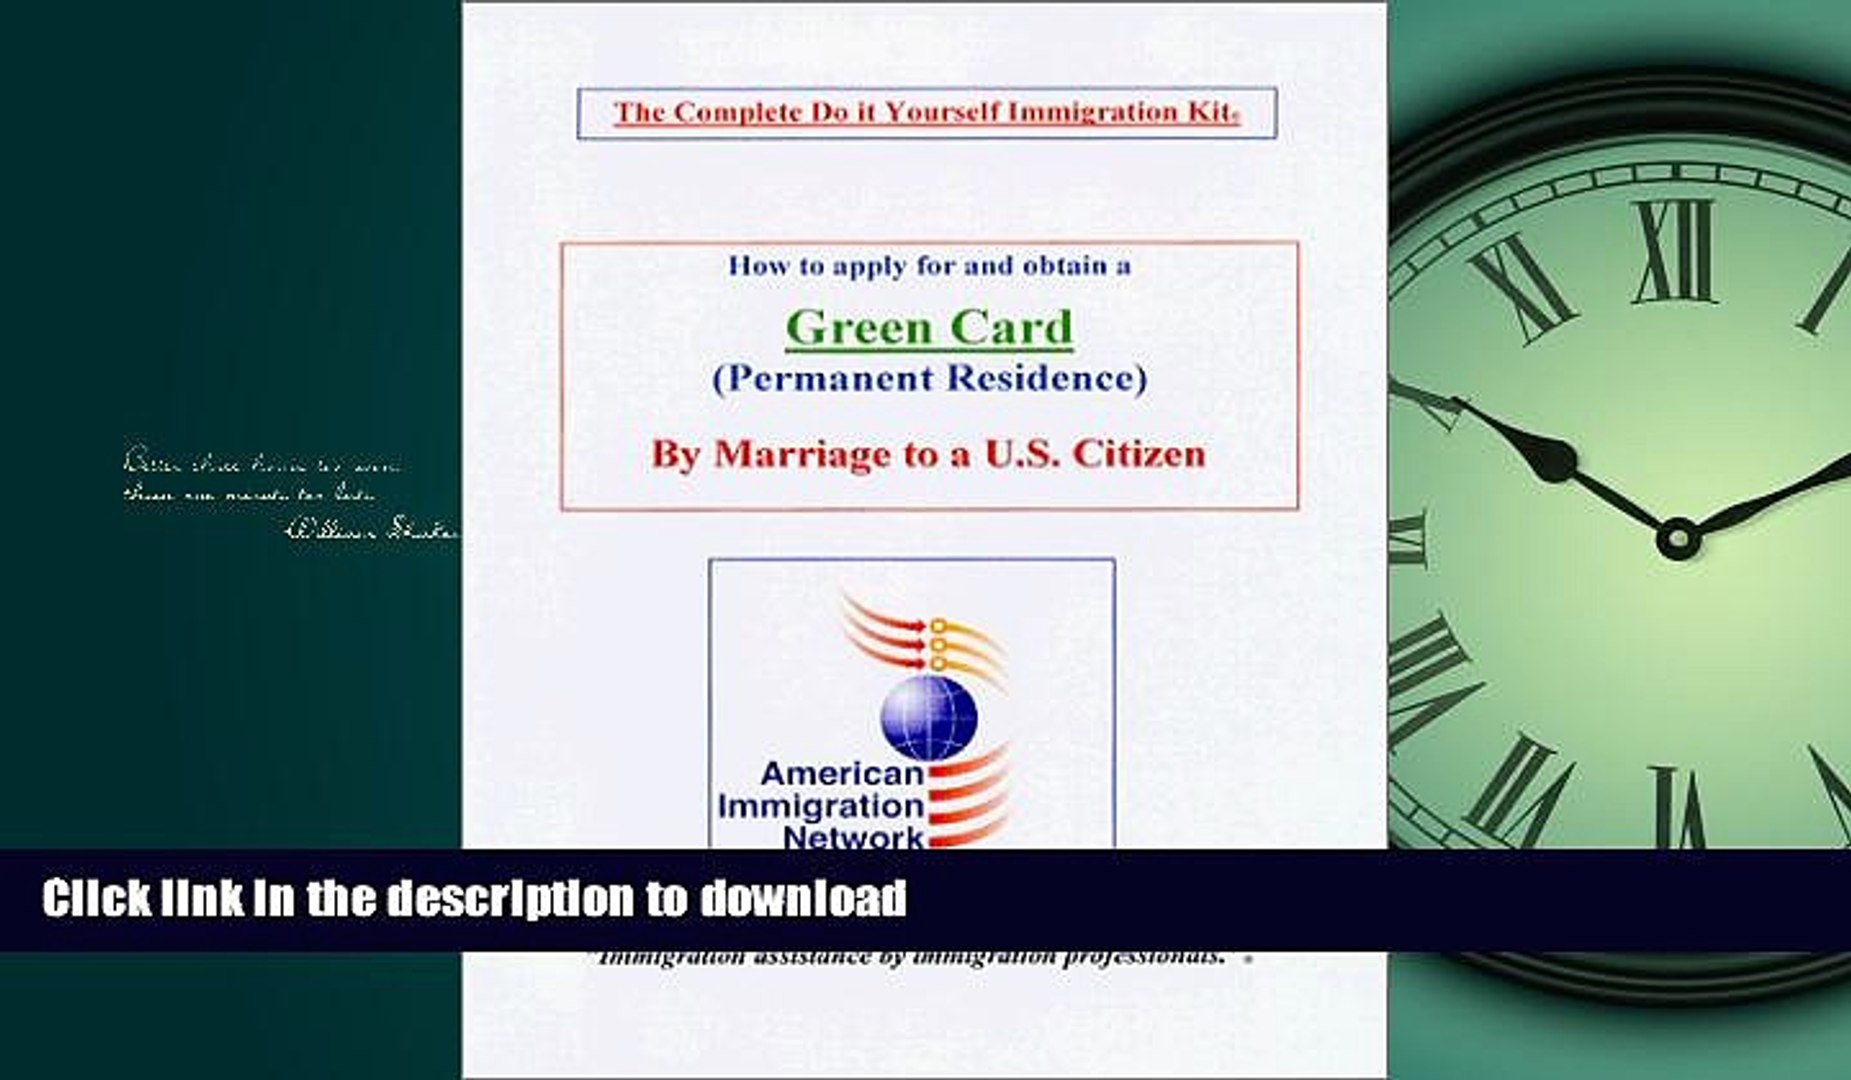 READ BOOK  How to apply for and obtain a Green card by Marriage to a U.S. Citizen - The Complete